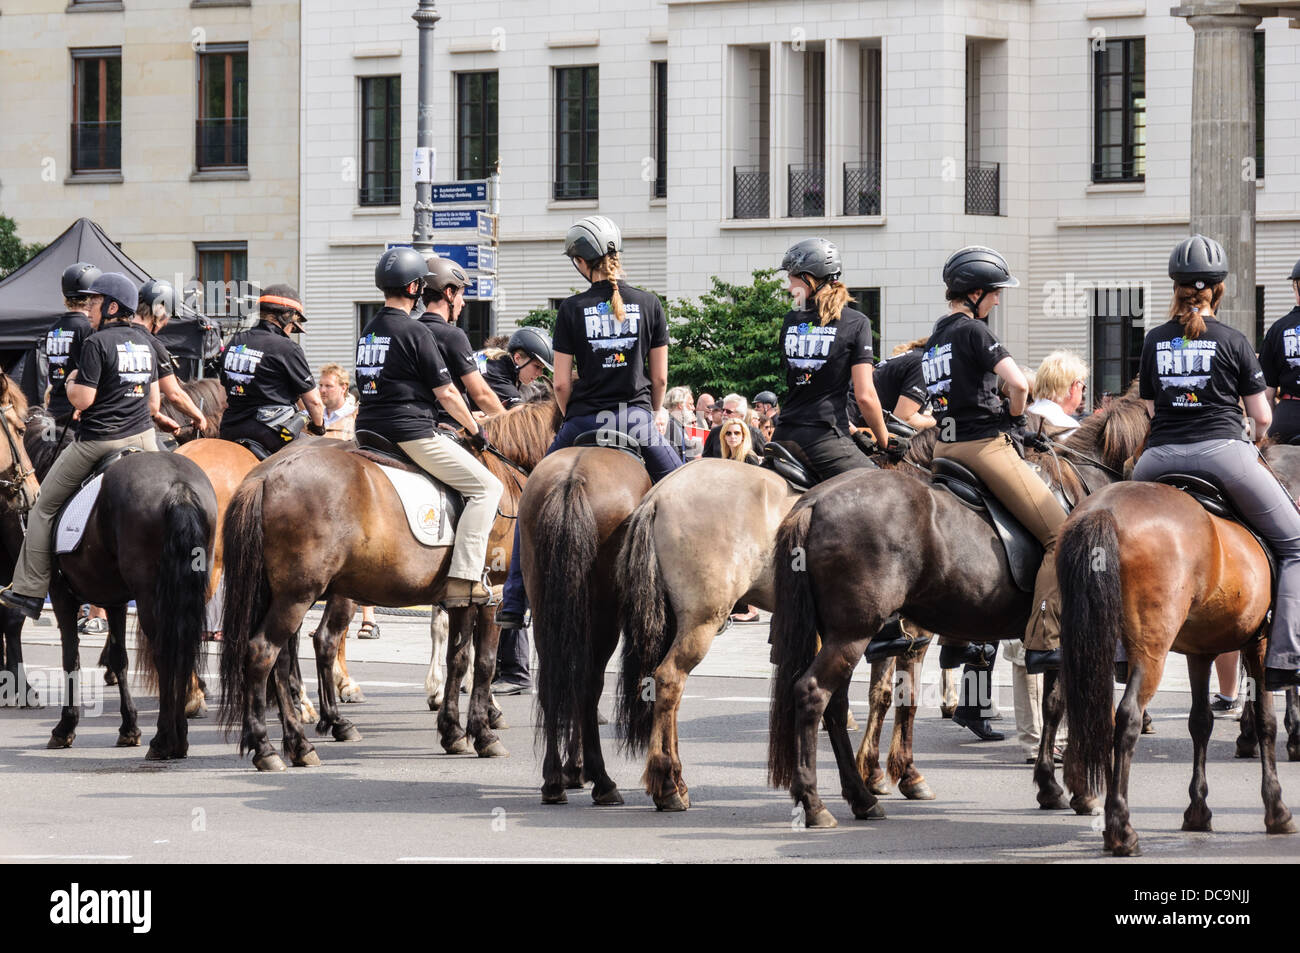 Riders wearing safety helmets, riding Icelandic horses - 17th of June Street Square Berlin Germany Stock Photo